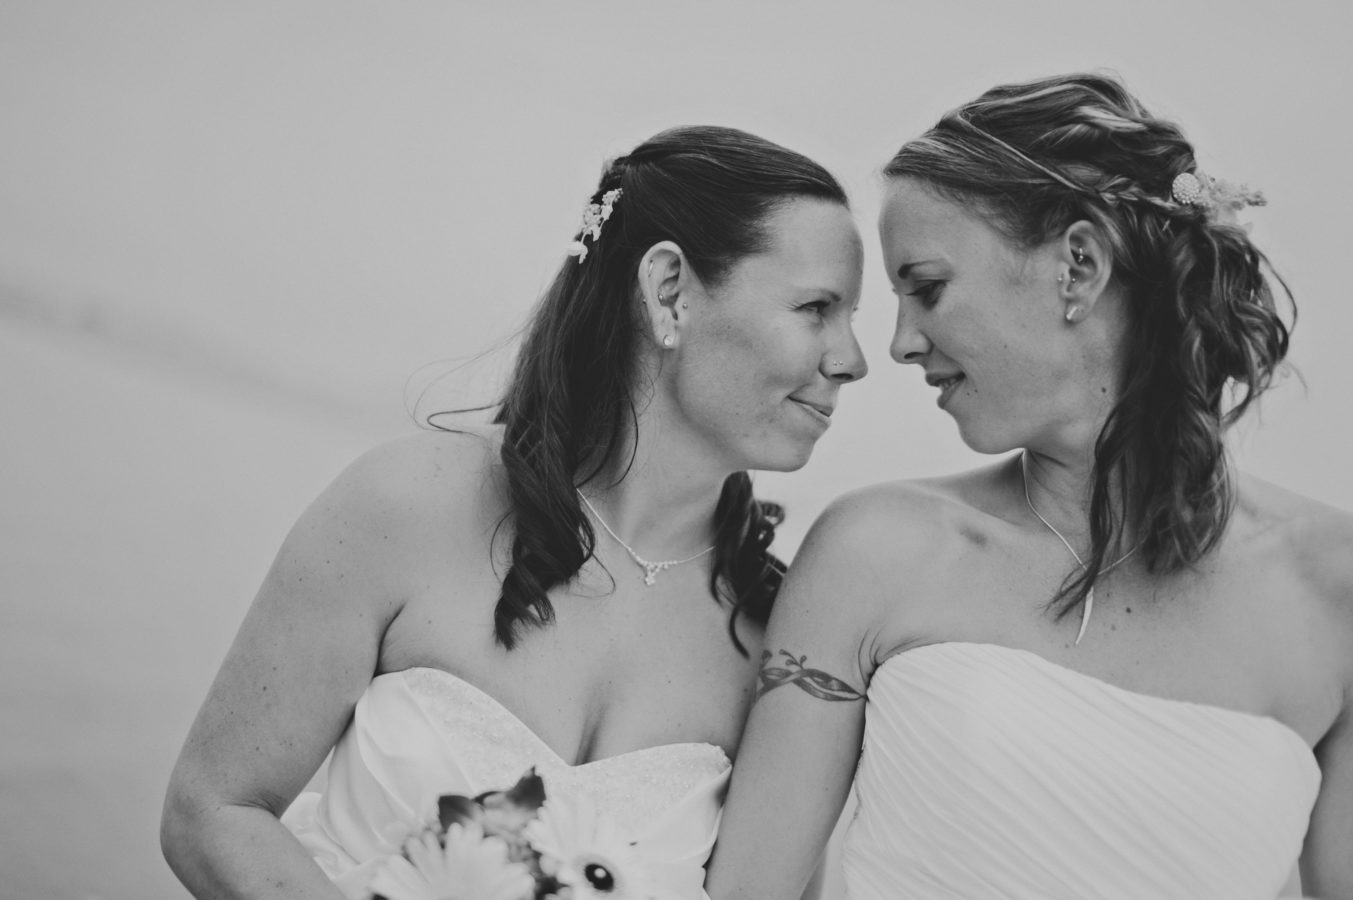 two brides in wedding dresses intimately looking at one another